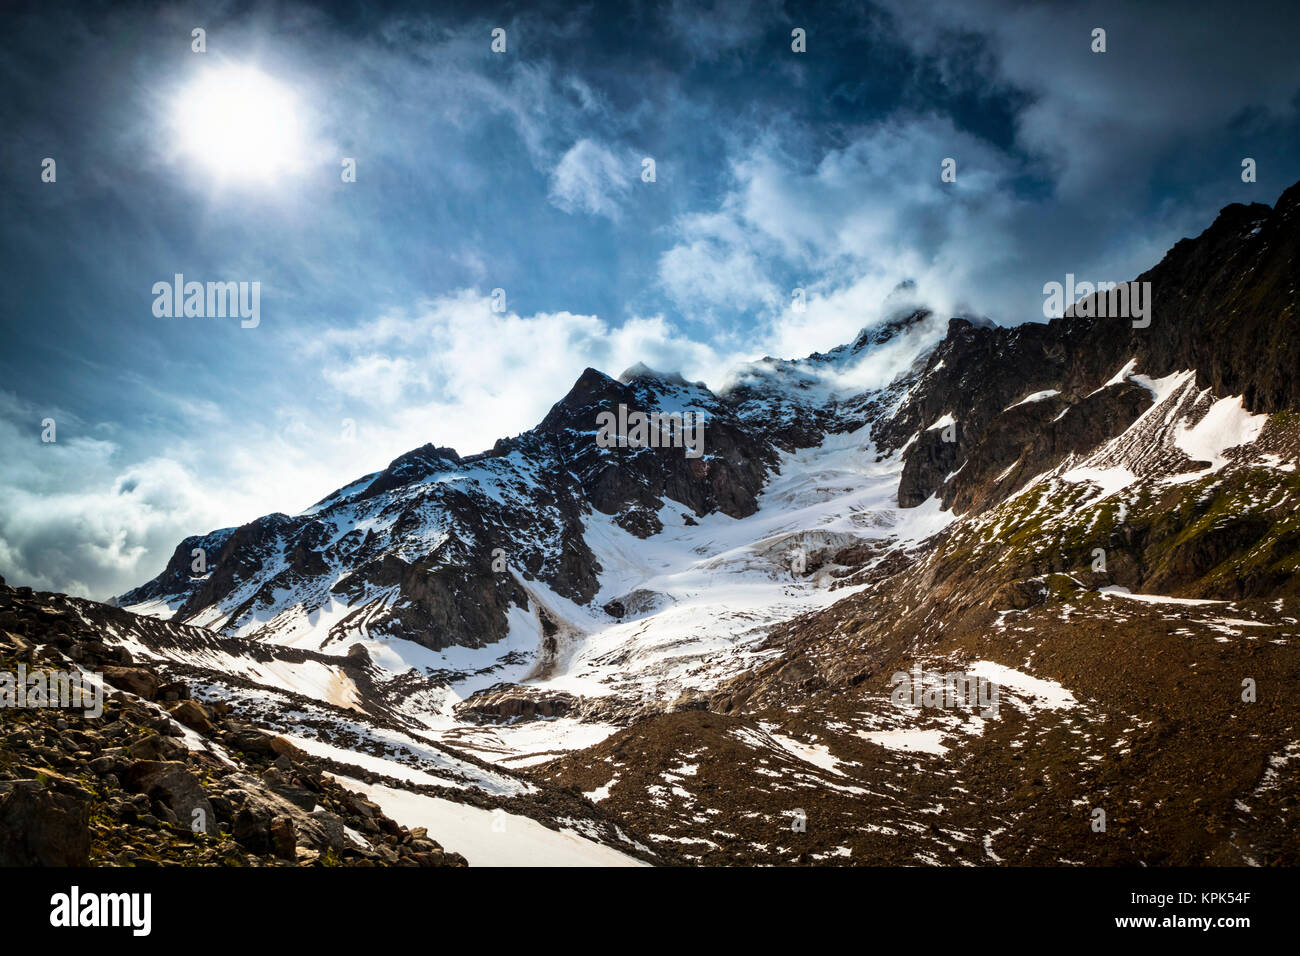 Storm clouds over Aiguille des Glaciers (mountain) and Estellette Glacier and moraine, Alps; Aosta Valley, Italy Stock Photo